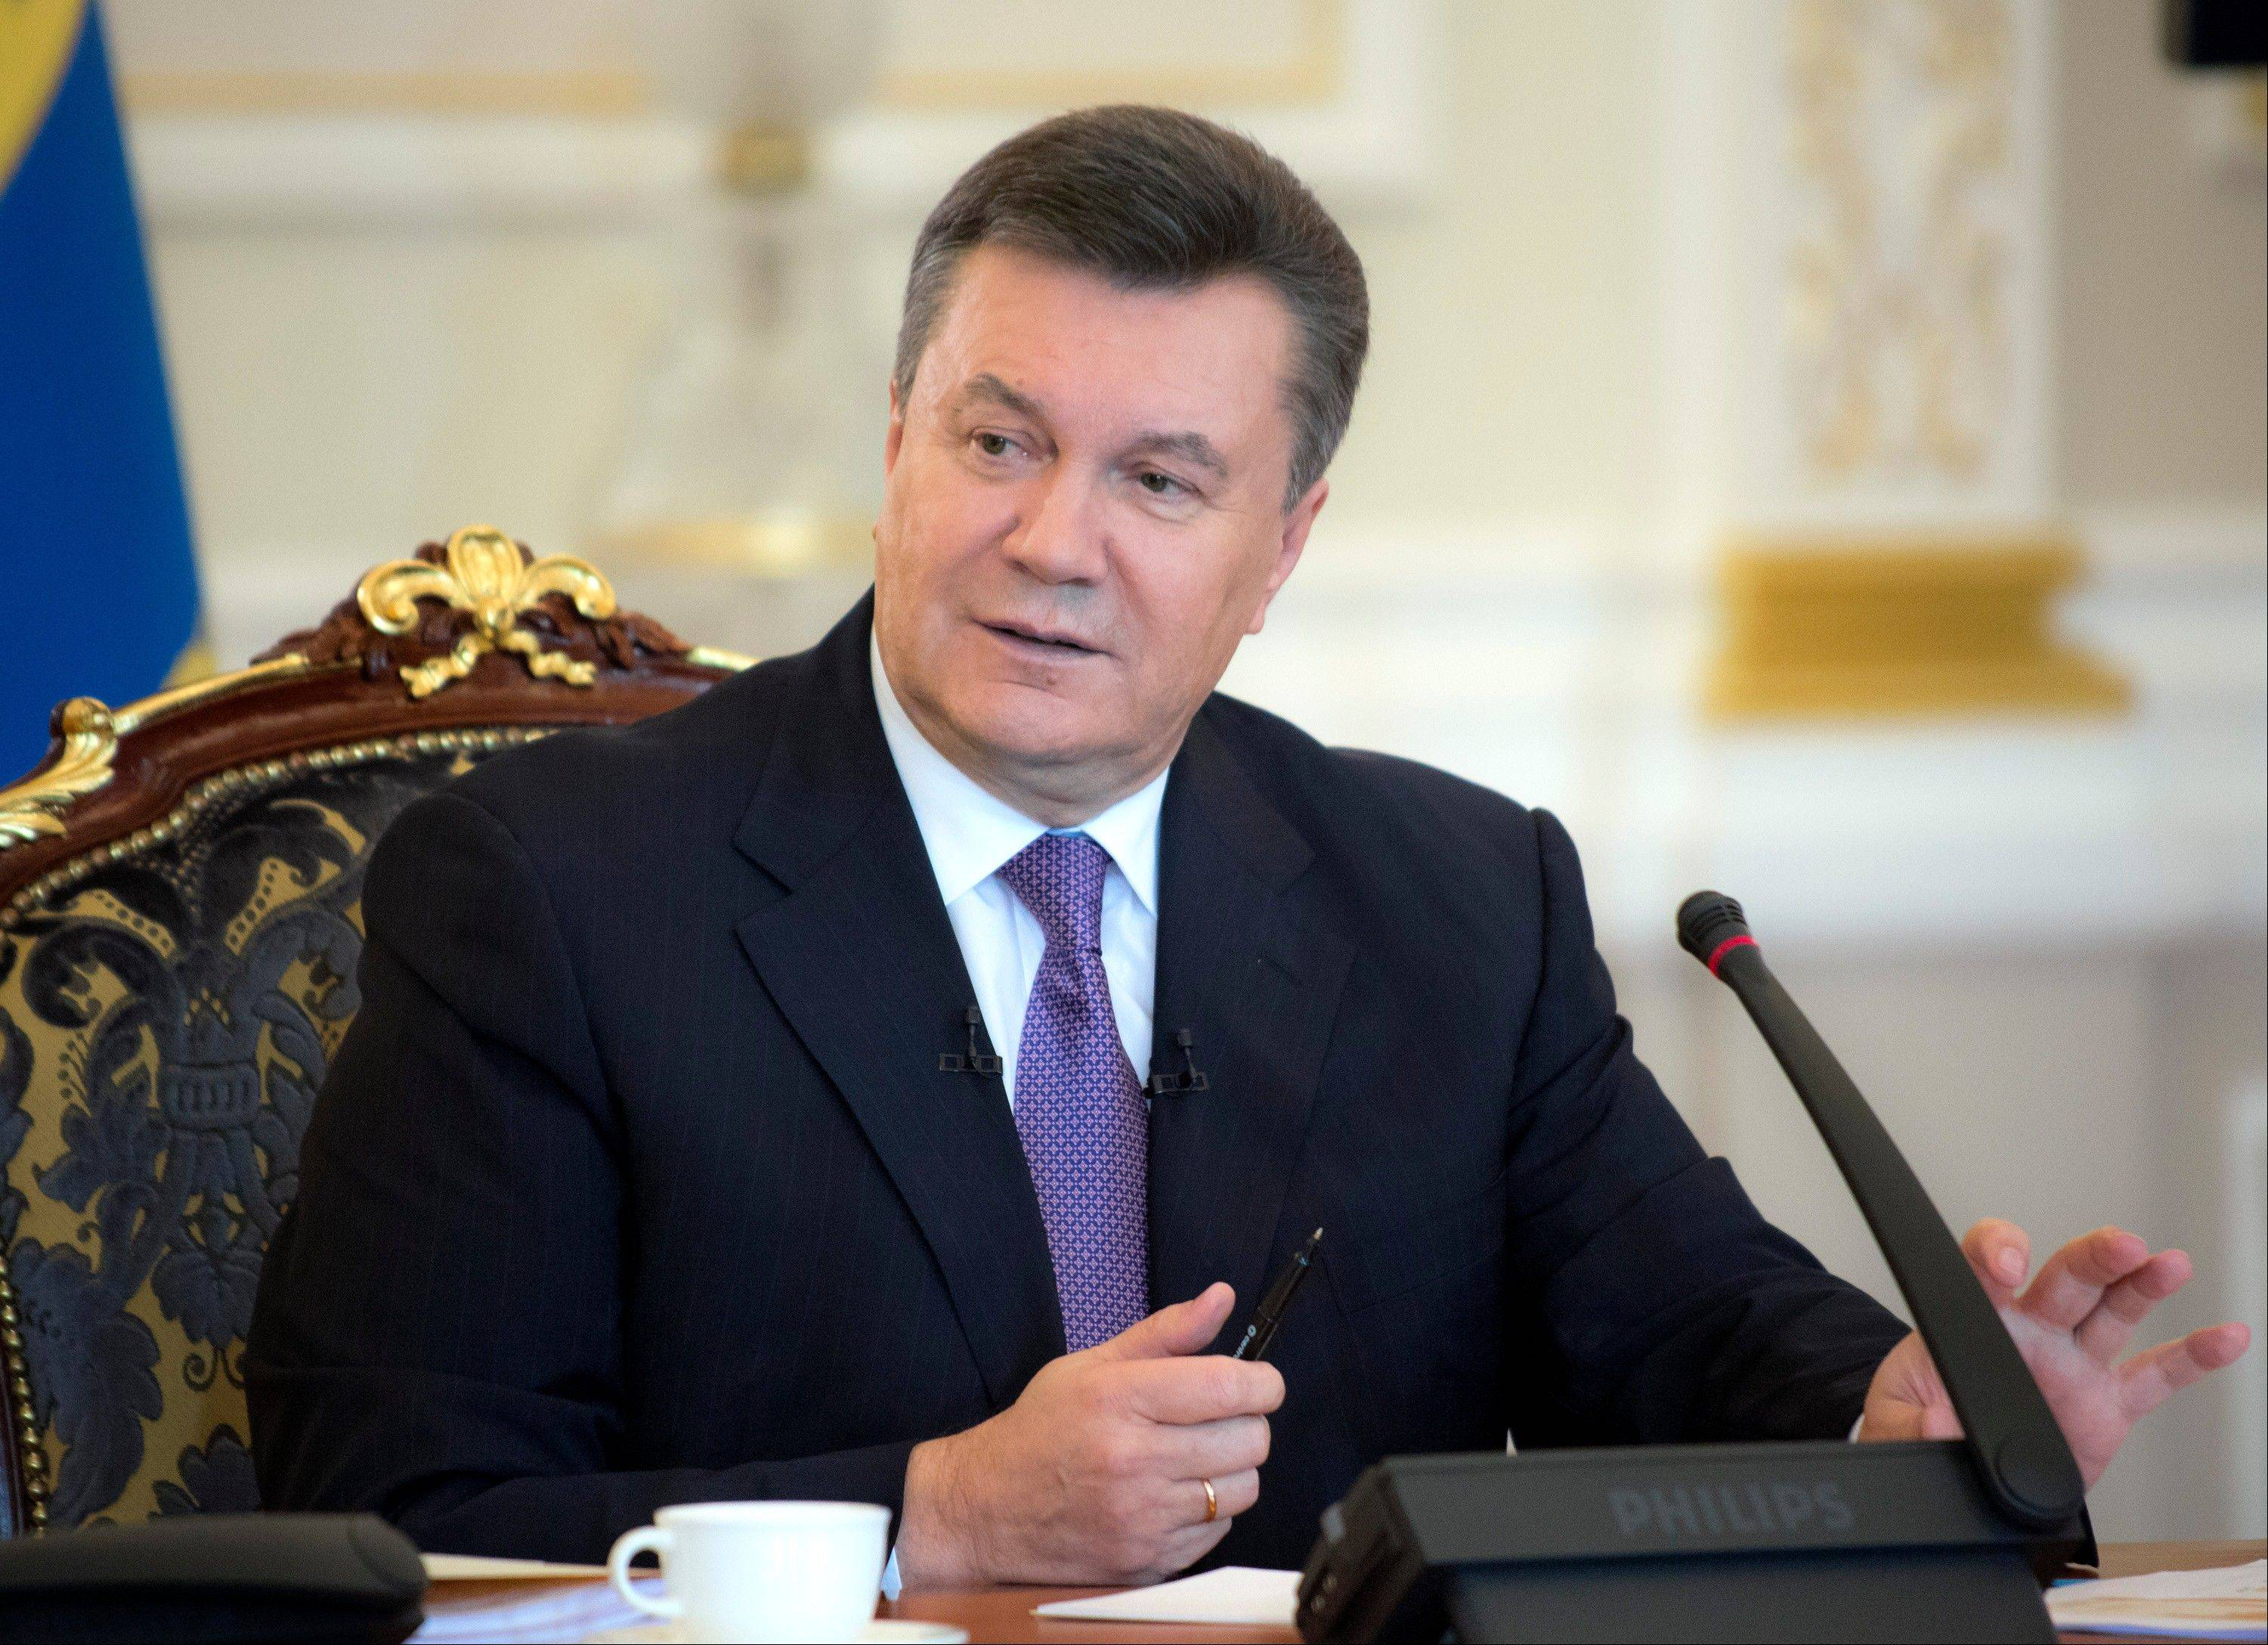 Ukrainian President Viktor Yanukovych faces massive street protests over his decision to spike a pact with the EU in favor of closer ties with Russia.